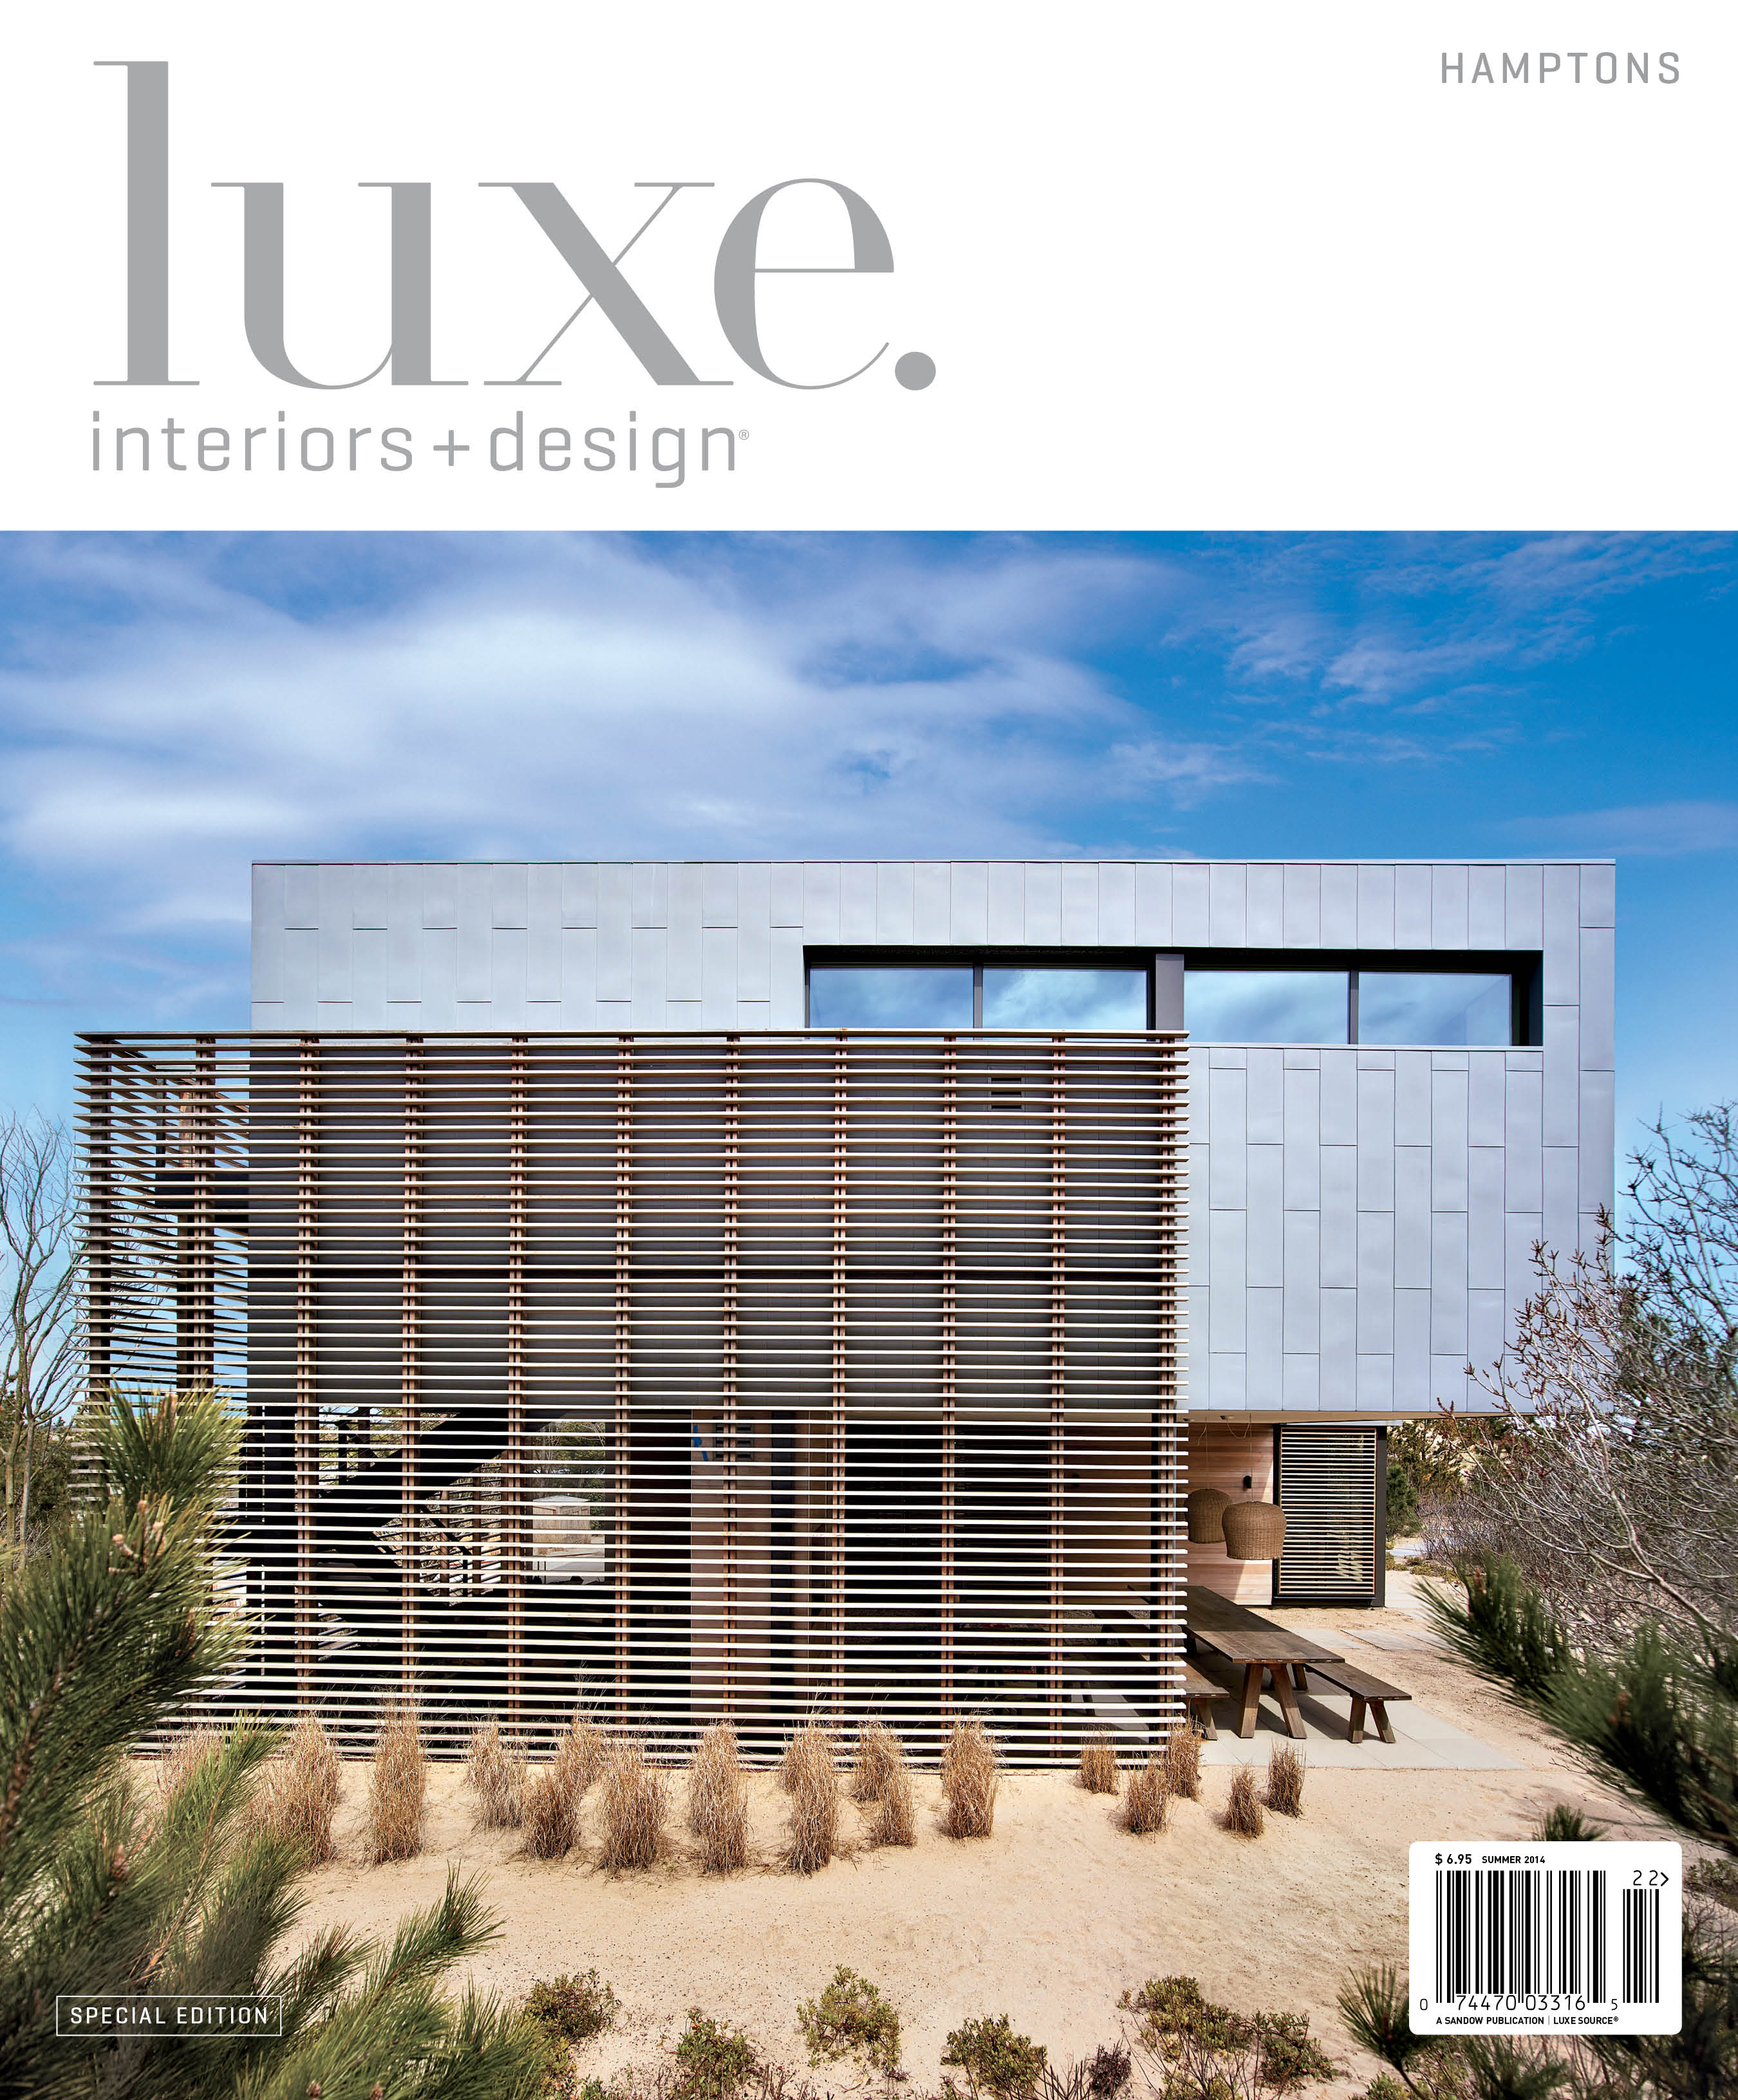 Luxe Interiors + Design publishes in the Hamptons this summer